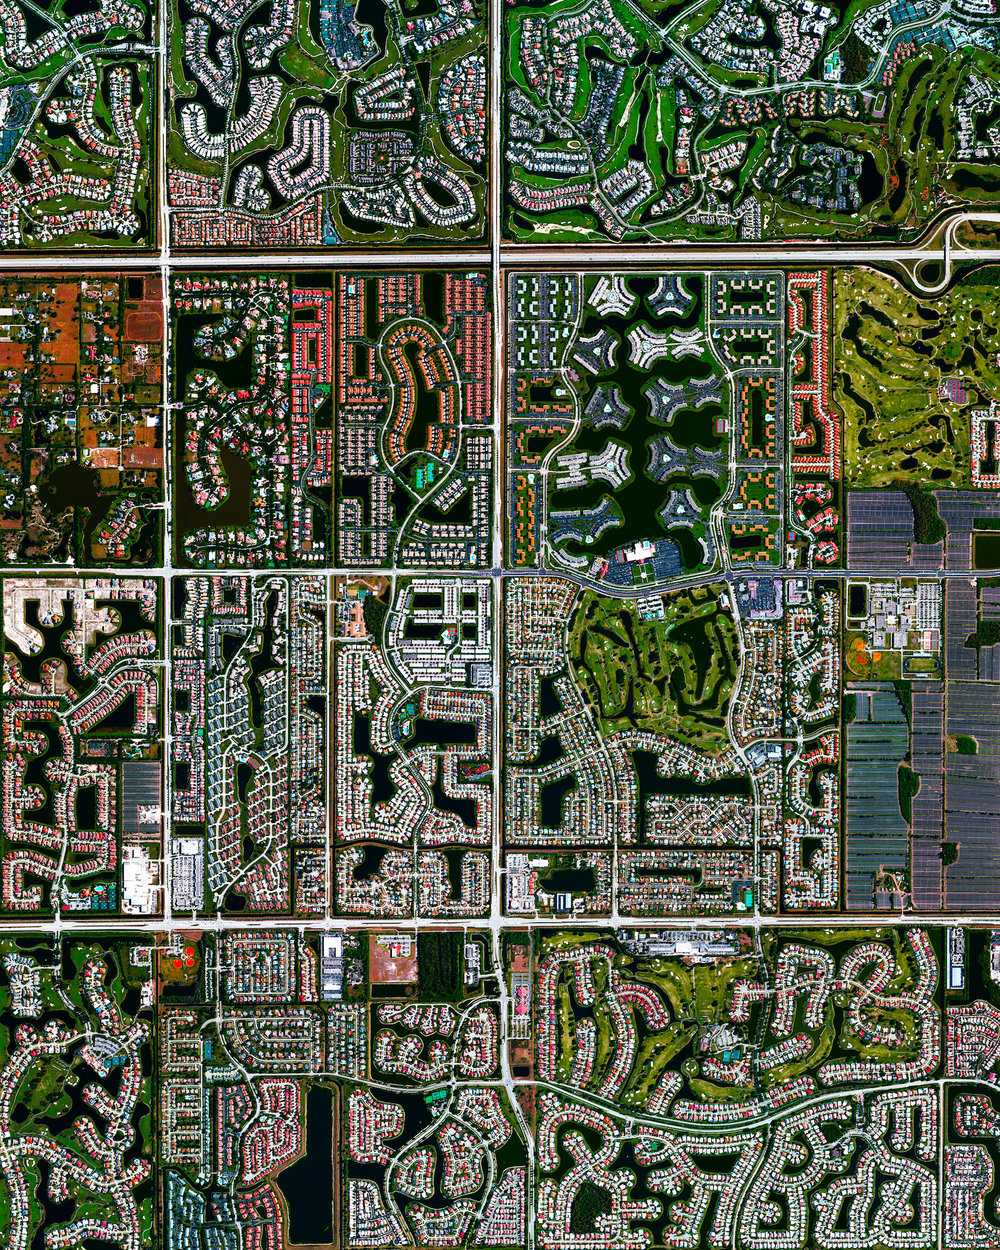 9/22/2016   Boca Raton, Florida    26.386332°, – 80.179917°      Residential development is seen in Boca Raton, Florida, USA. Because many cities in the state contain master-planned communities, often built on top of waterways in the latter half of the twentieth century, there are a number of intricate designs that are visible from the Overview perspective. Boca Raton is home to roughly 91,000 residents.